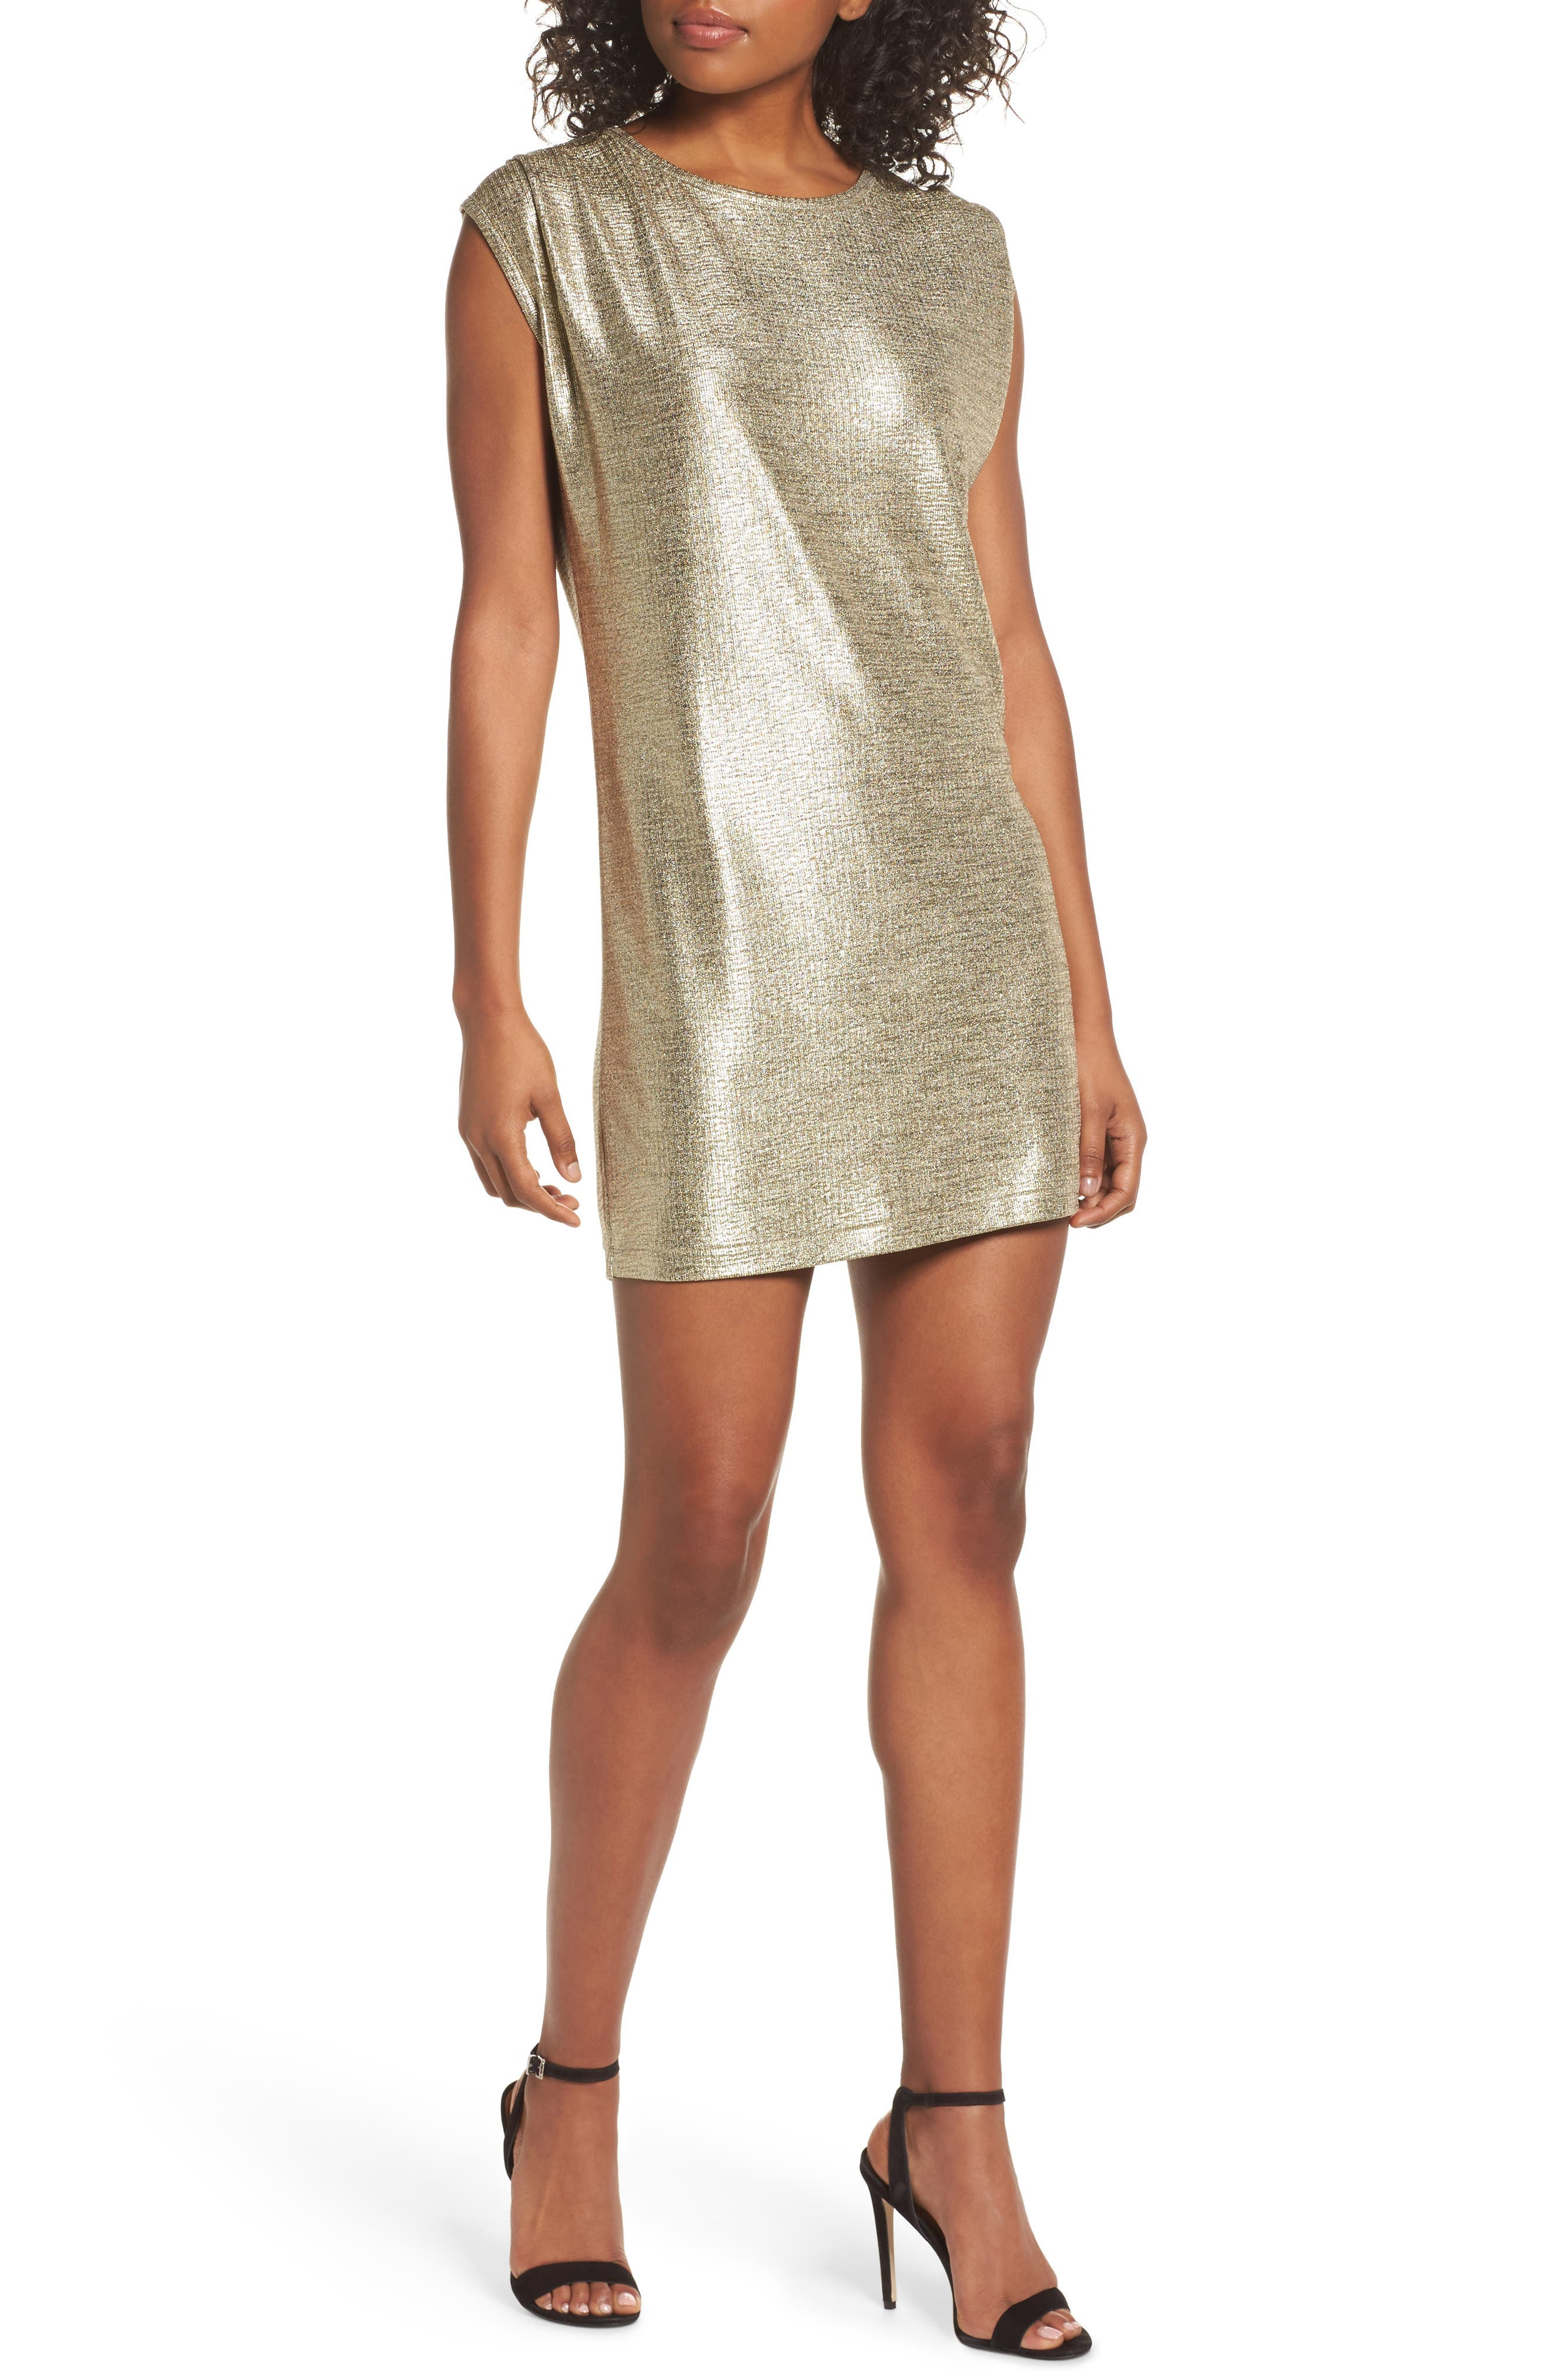 KNOT SISTERS Disco Minidress, Main, color, 718